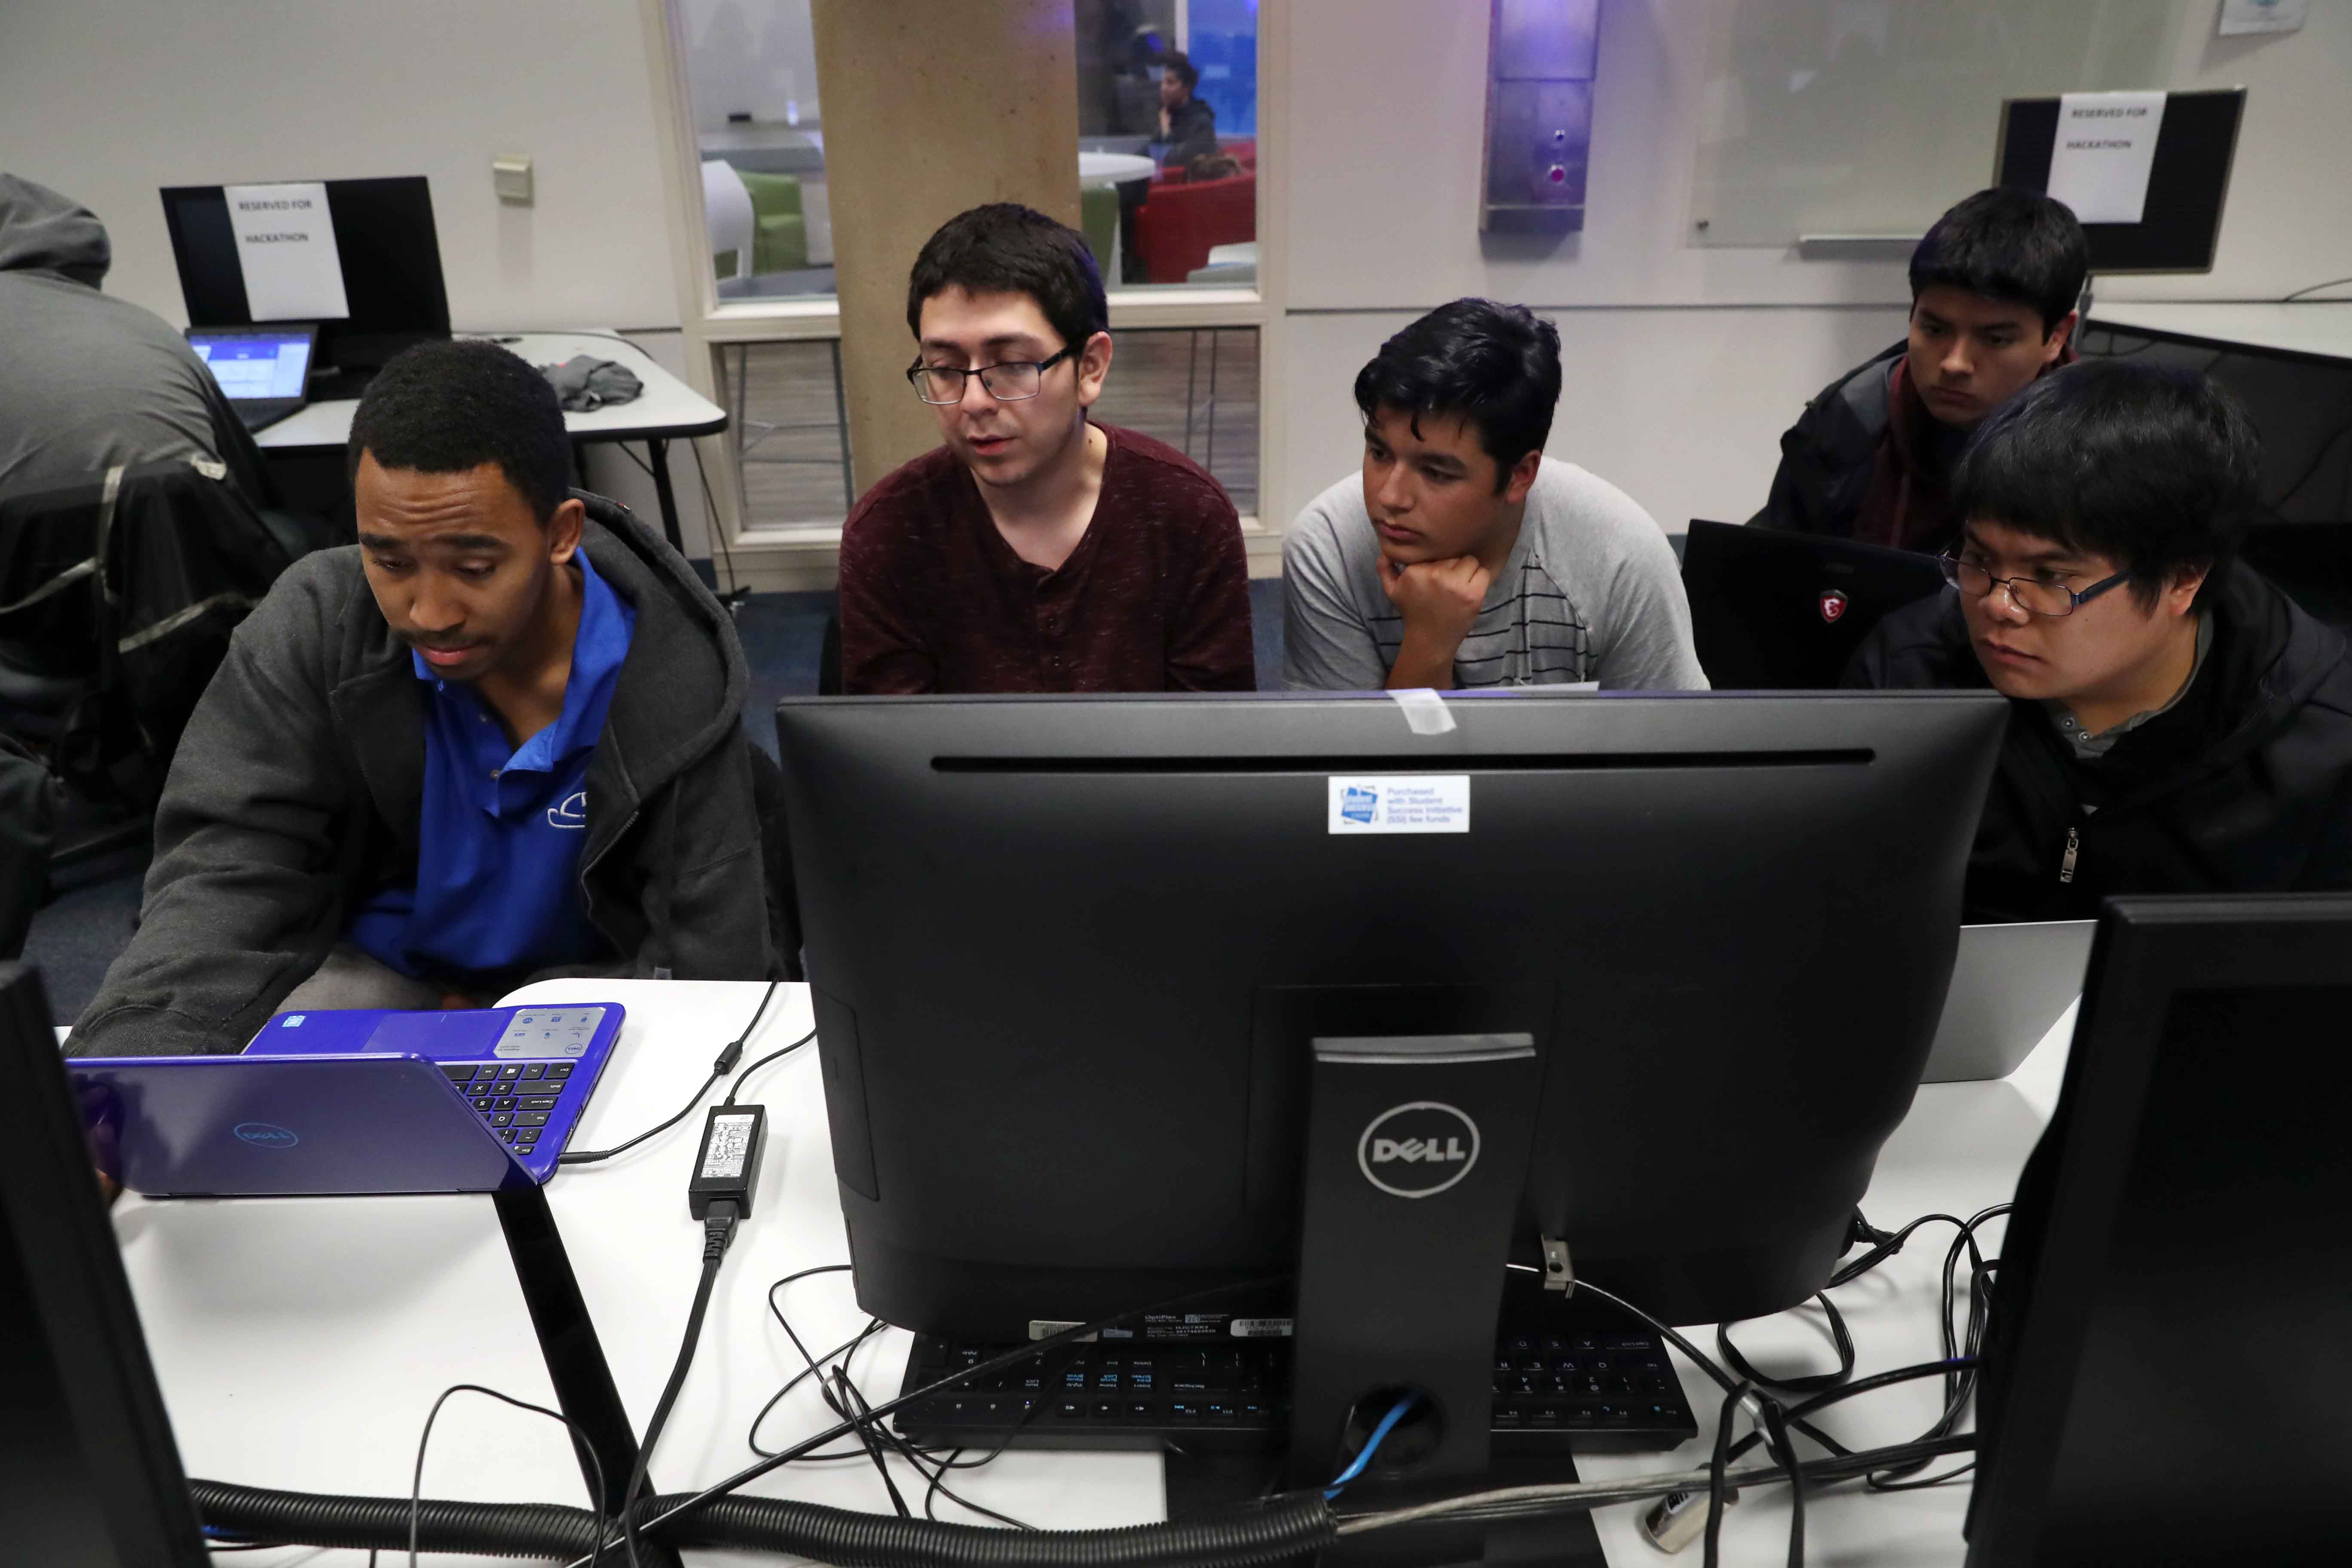 The hackathon was sponsored by the Institute of Electrical and Electronics Engineers (IEEE) foothill section, Google, CSUSB Associated Students Inc. (ASI), the university's Computer Science and Engineering Club (CSE), as well as Information Technology Ser